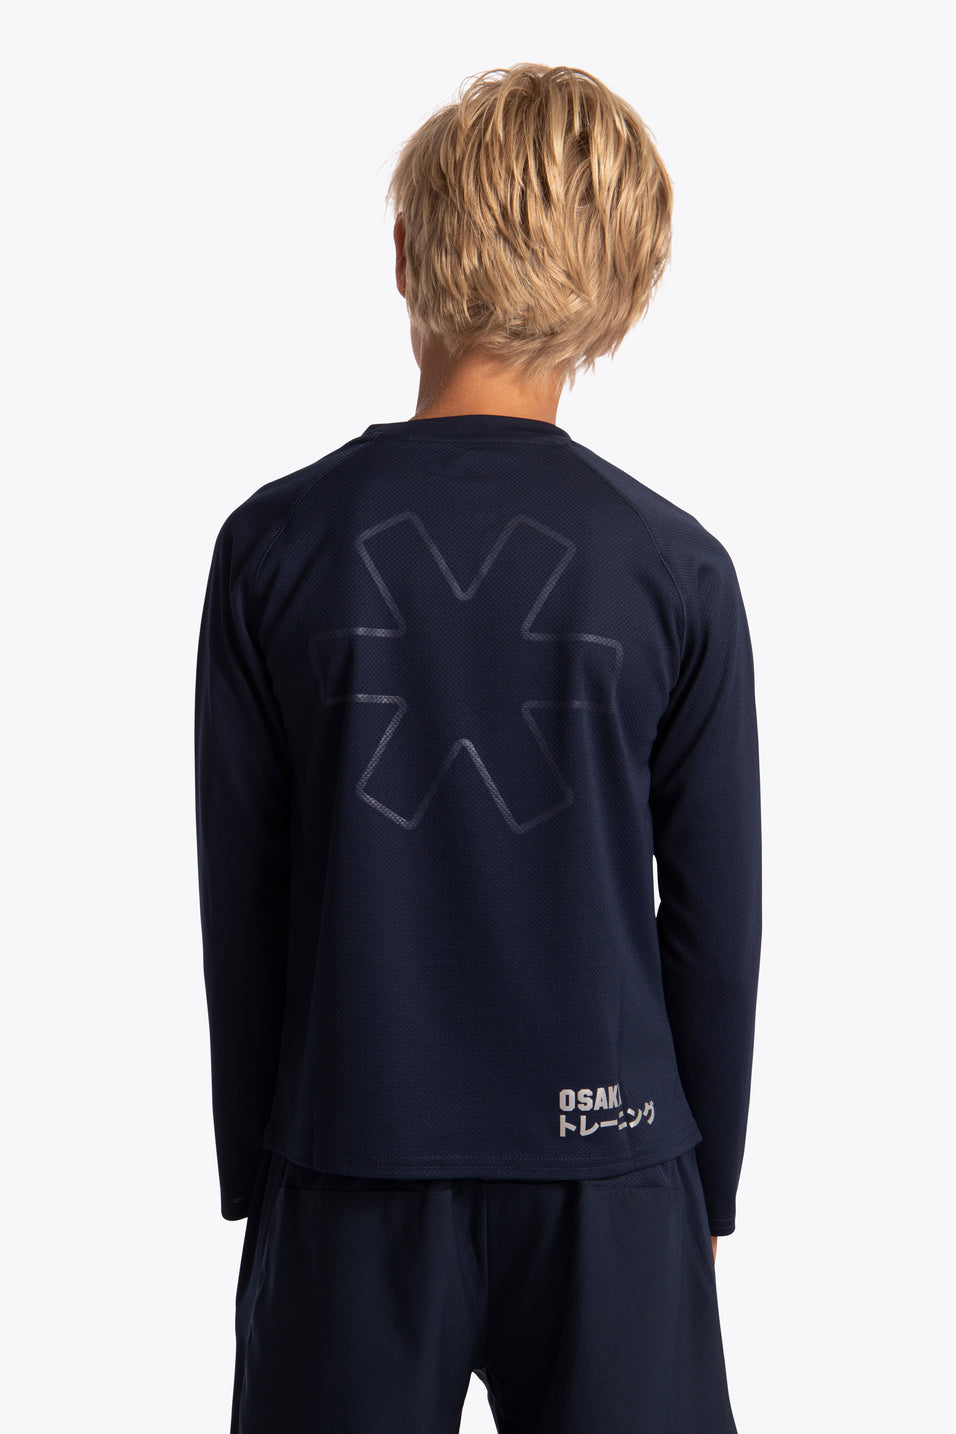 osaka training tee long sleeve for kids